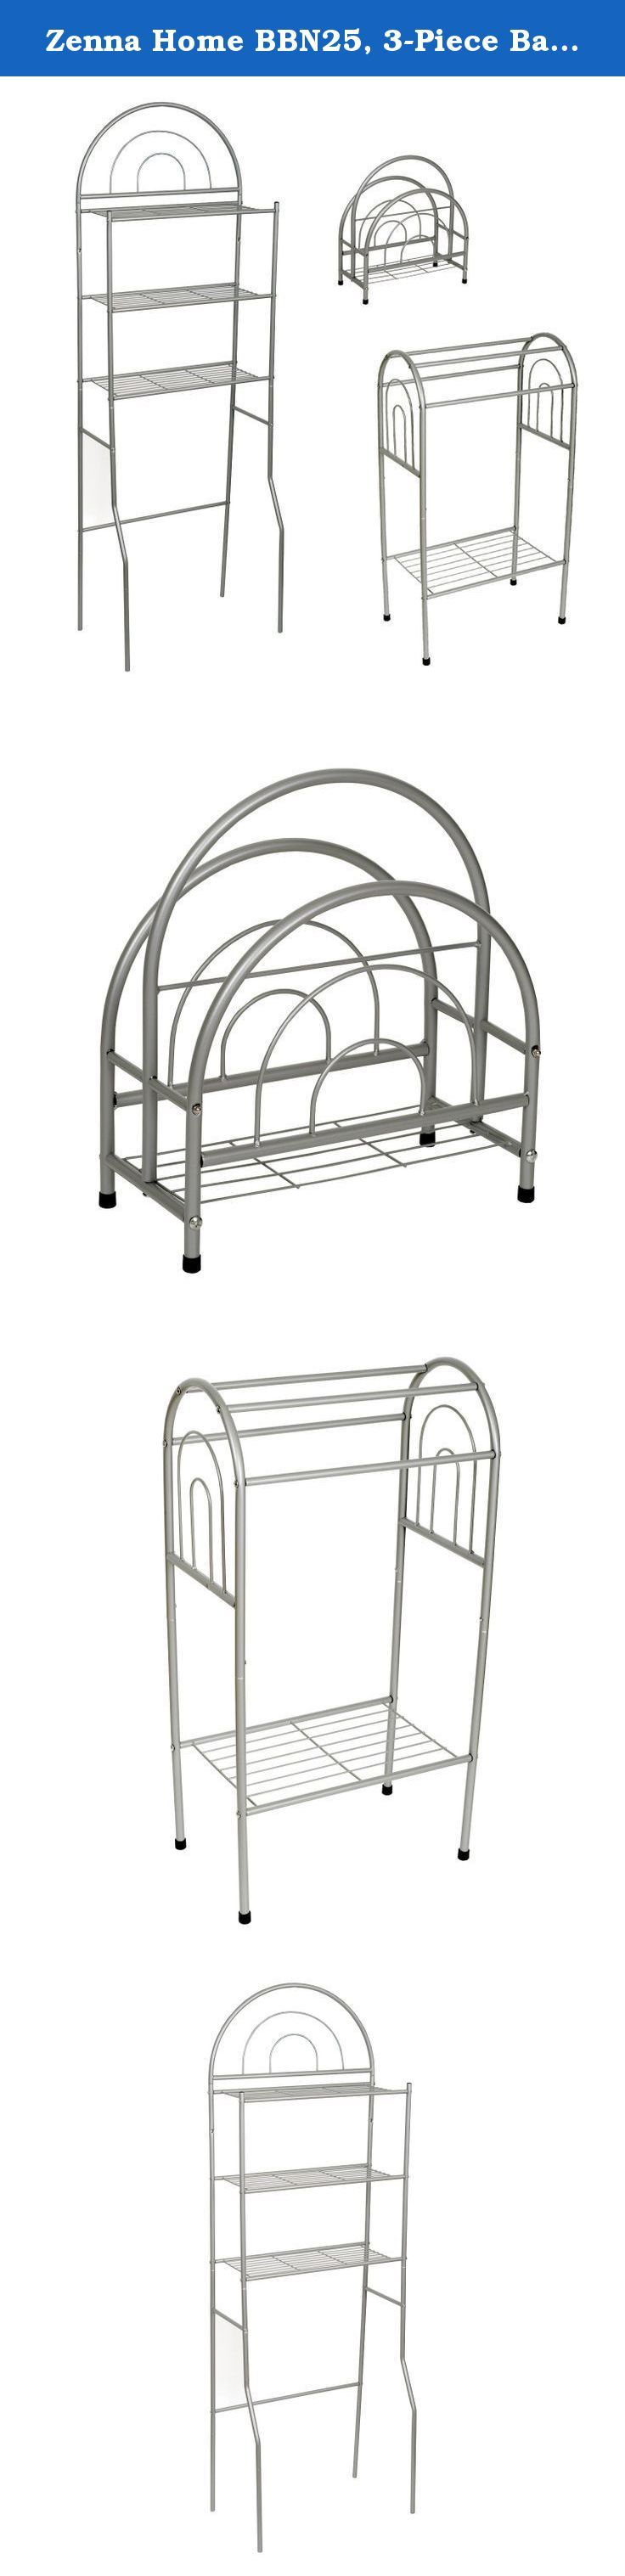 Zenna Home BBN25, 3-Piece Bath in a Box, Spacesaver, Towel Rack, Magazine Rack, Satin Nickel. BBN25 Finish: Brushed Chrome Pictured in brushed chrome Features: -Three piece bathroom set. -Set includes etagere, towel rack and magazine stand. -Available in Brushed Chrome or White finish.